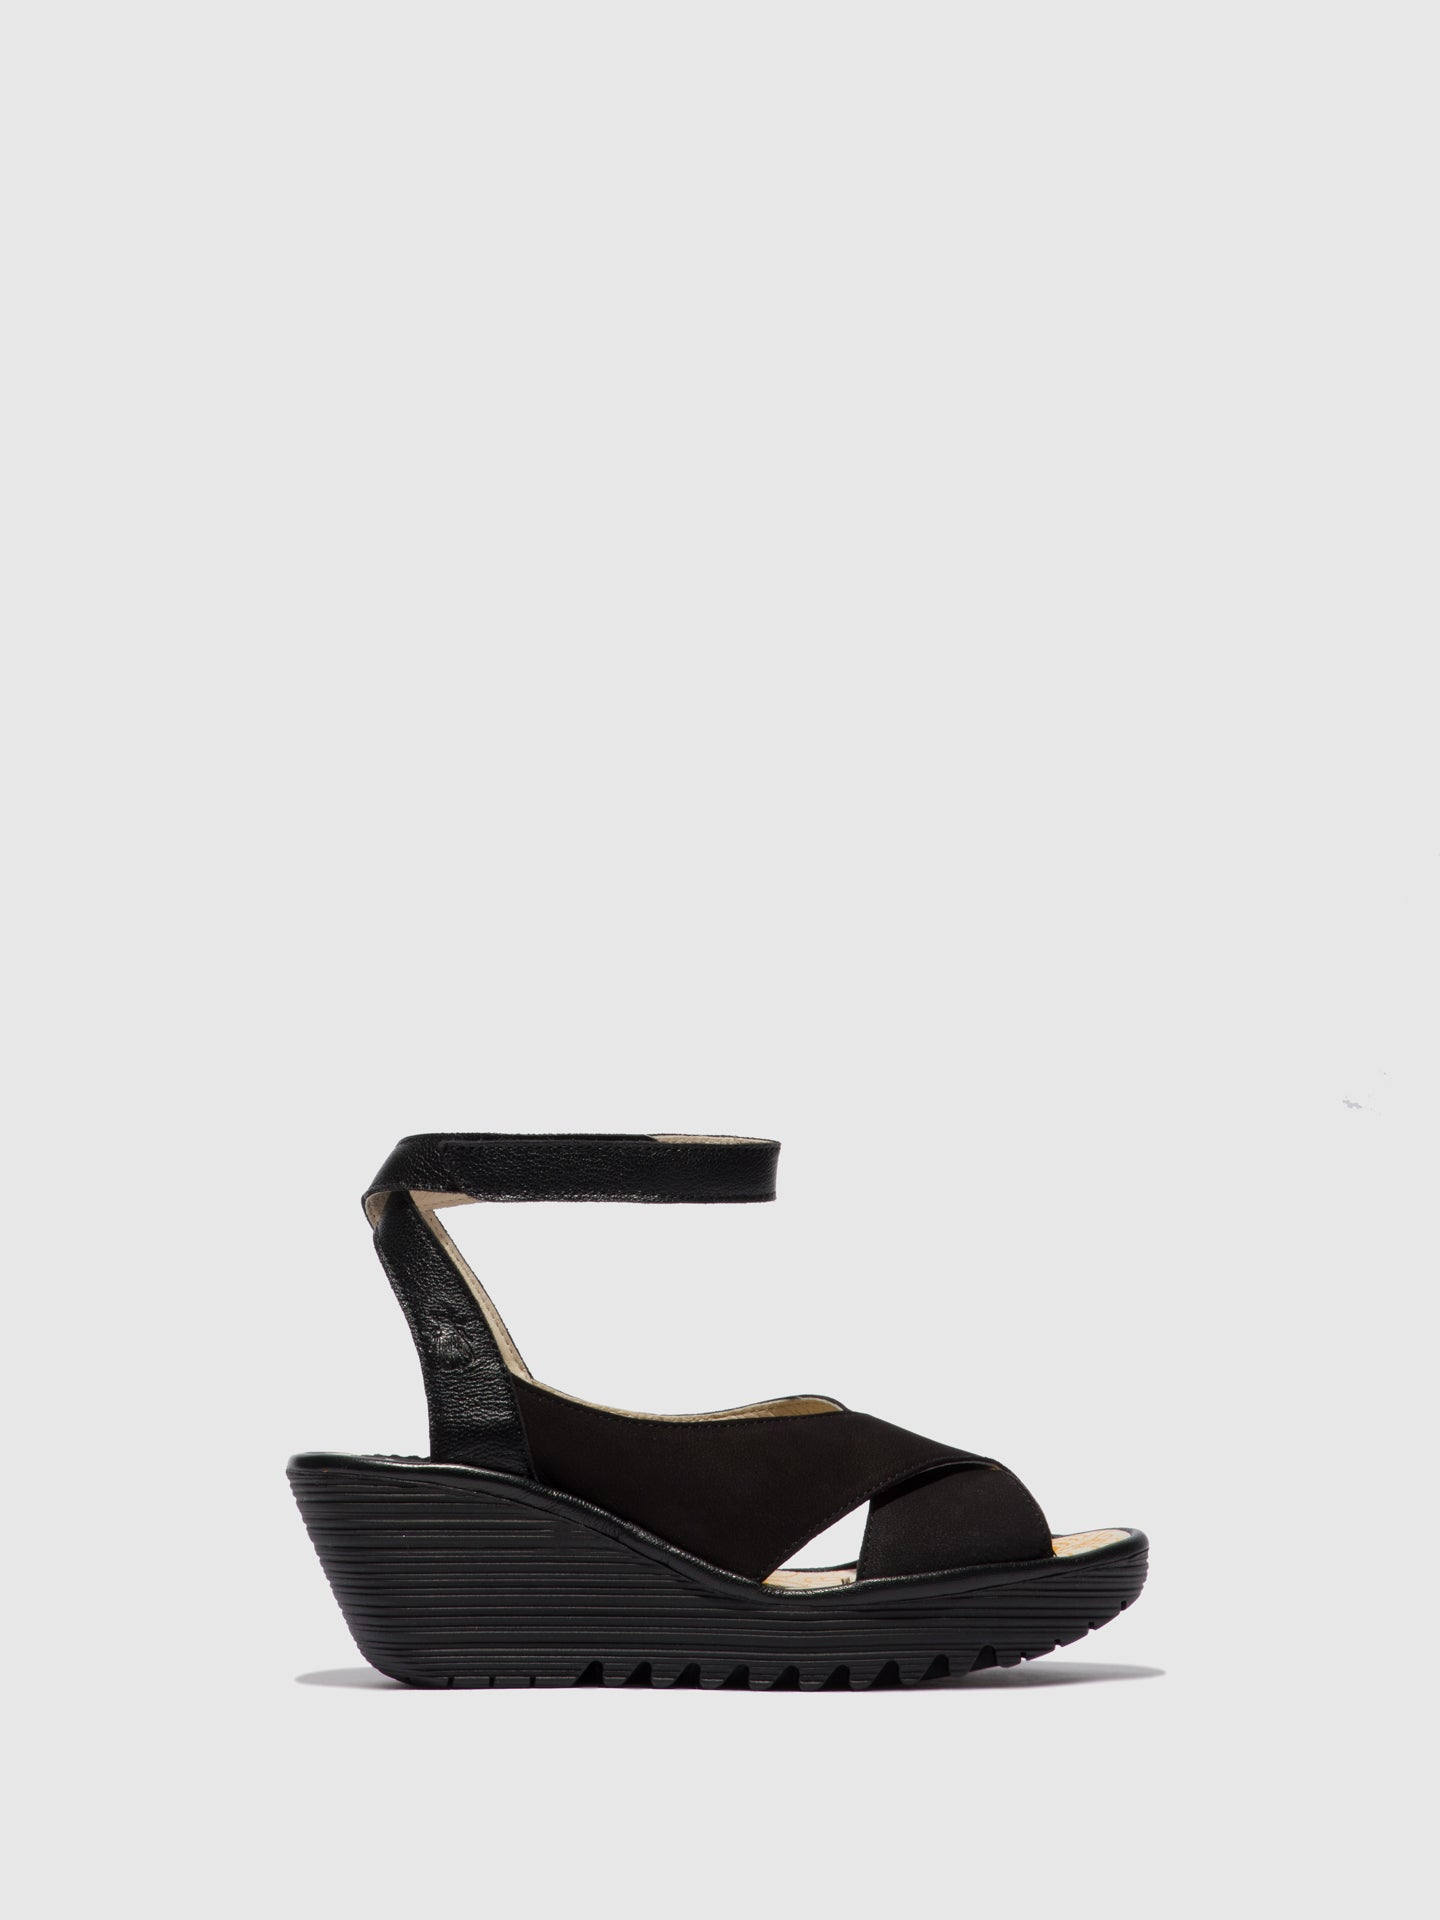 Fly London Ankle Strap Sandals YIVI308FLY CUPIDO/MOUSSE BLACK